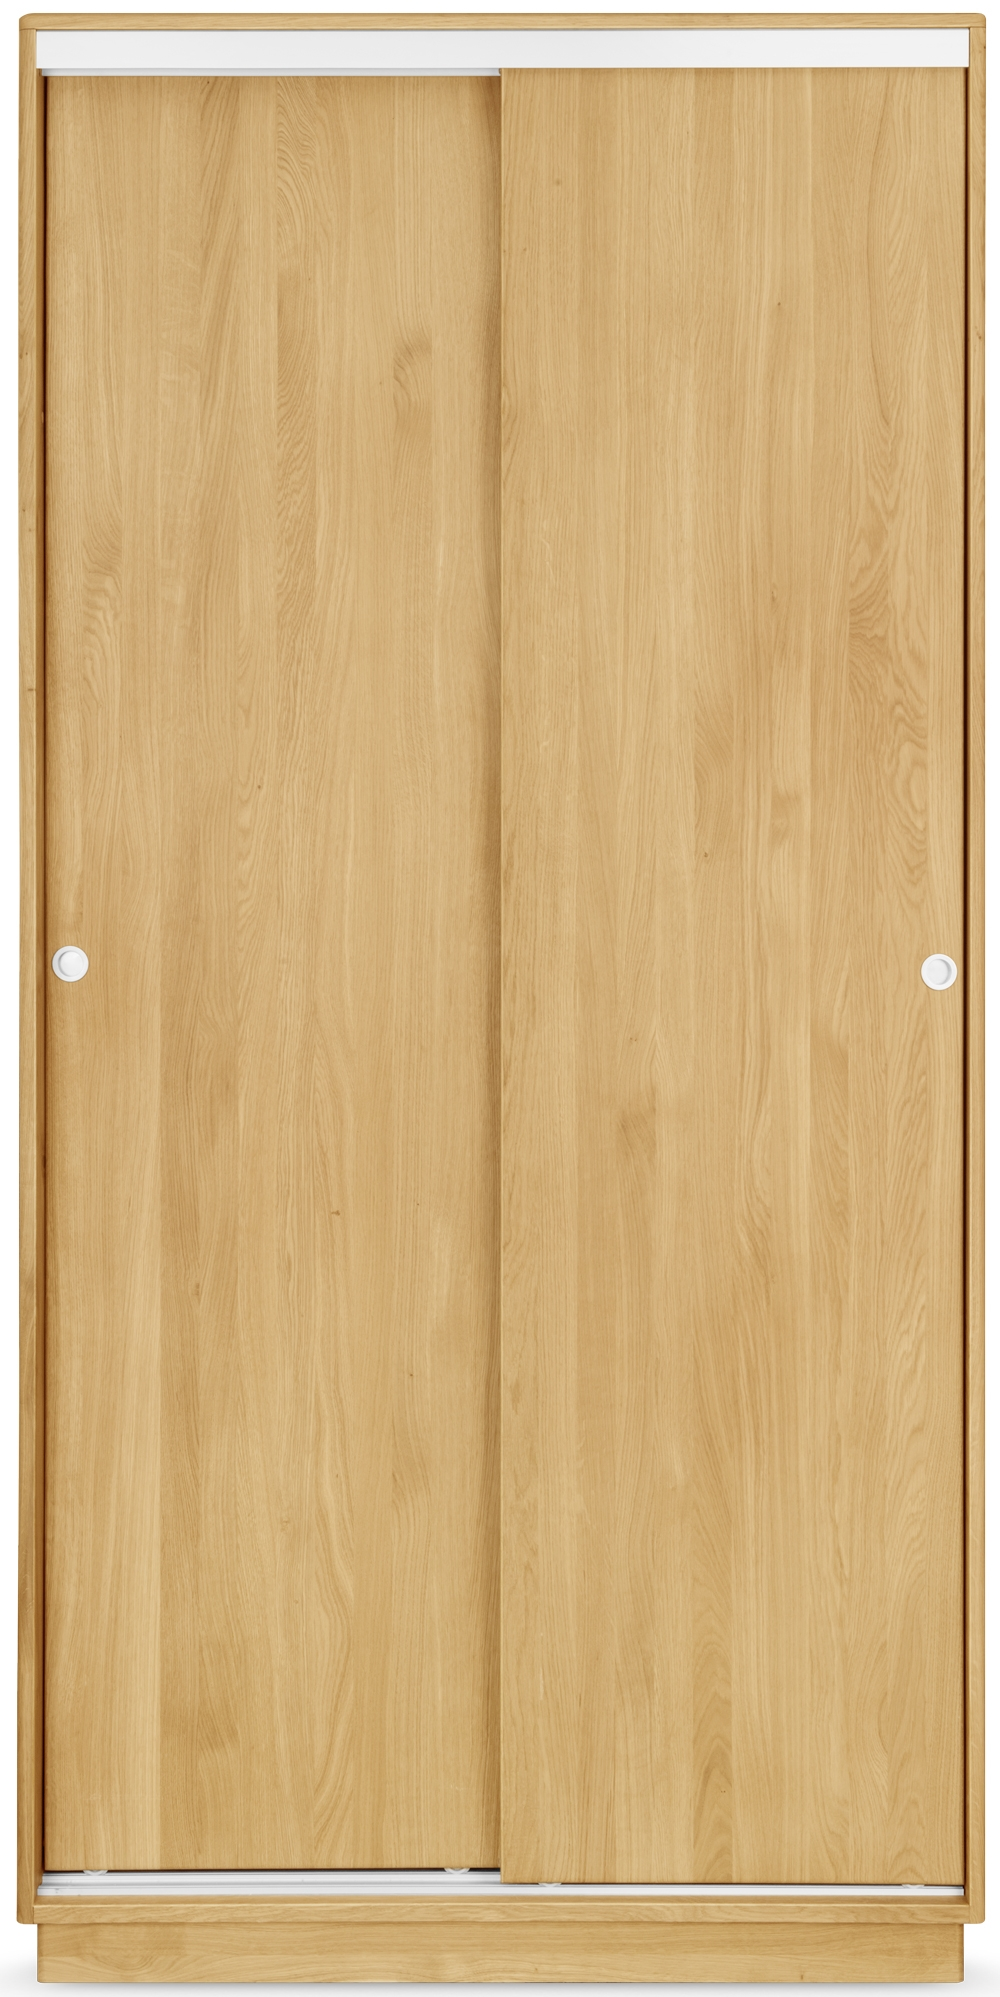 Clemence Richard Portofino Brushed Oak 2 Door Sliding Wardrobe